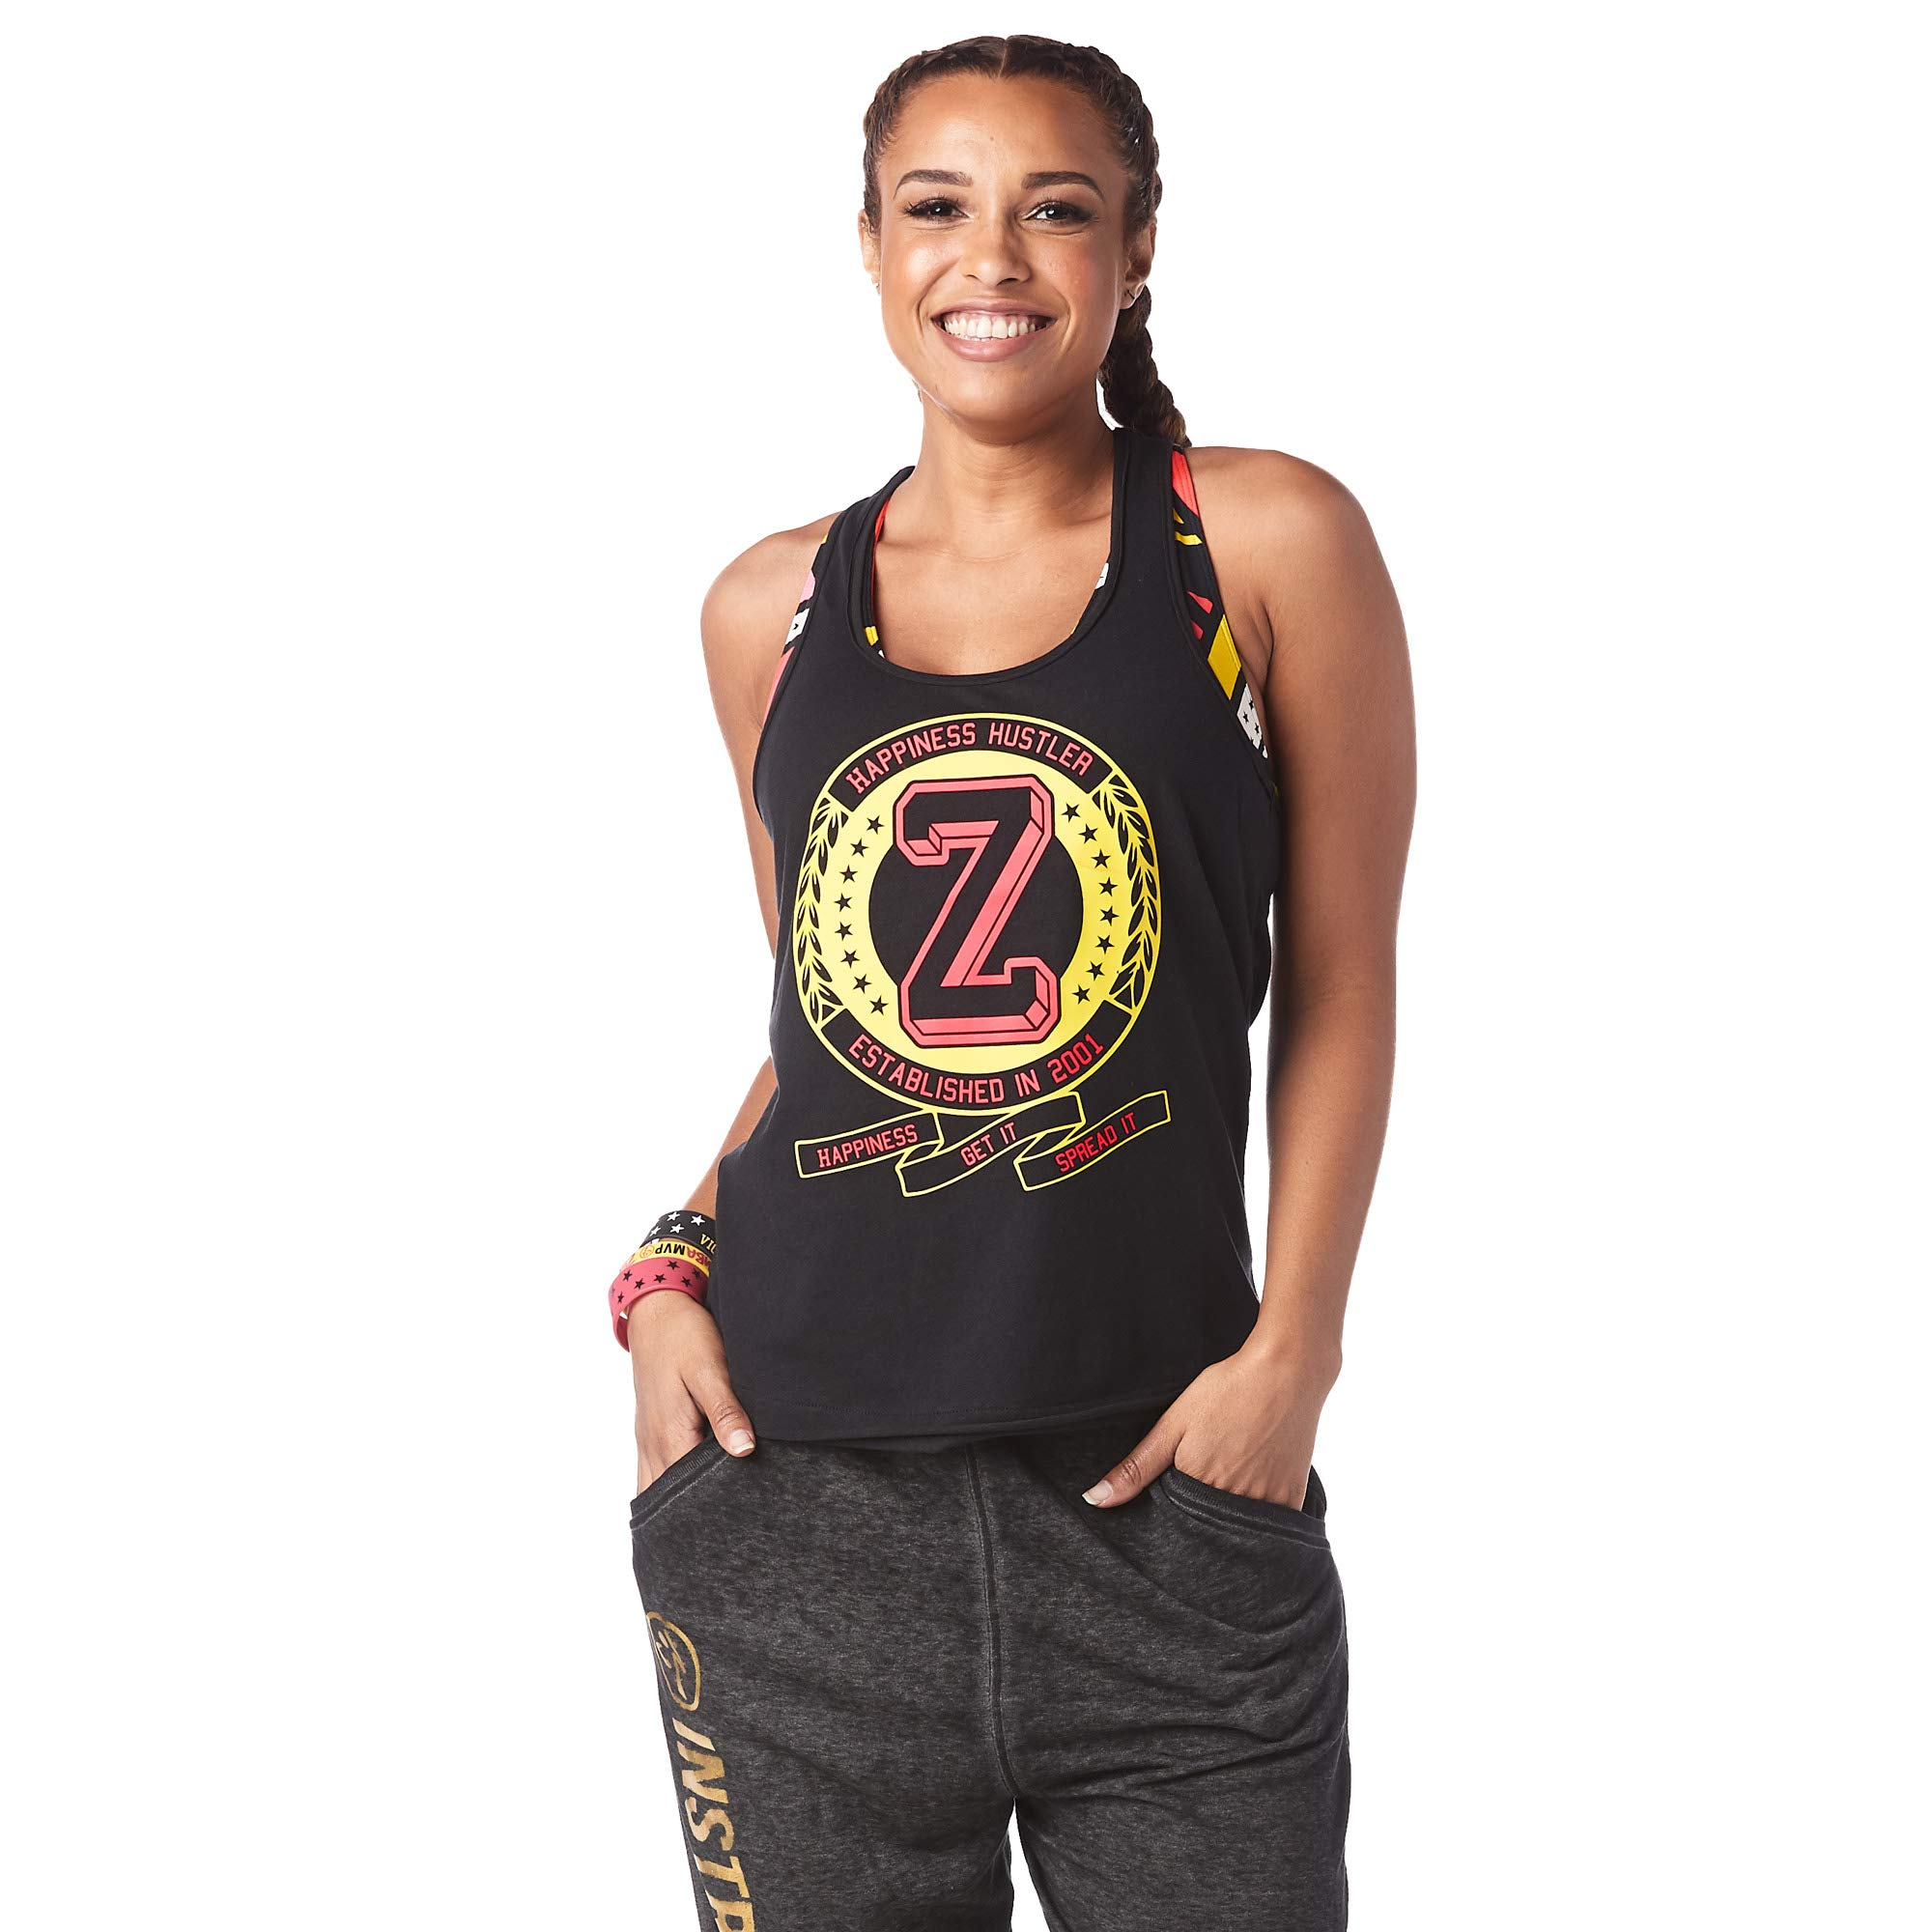 Zumba Athletic Graphic Design Dance Workout Racerback Black Tank Top for Women Slim Fit